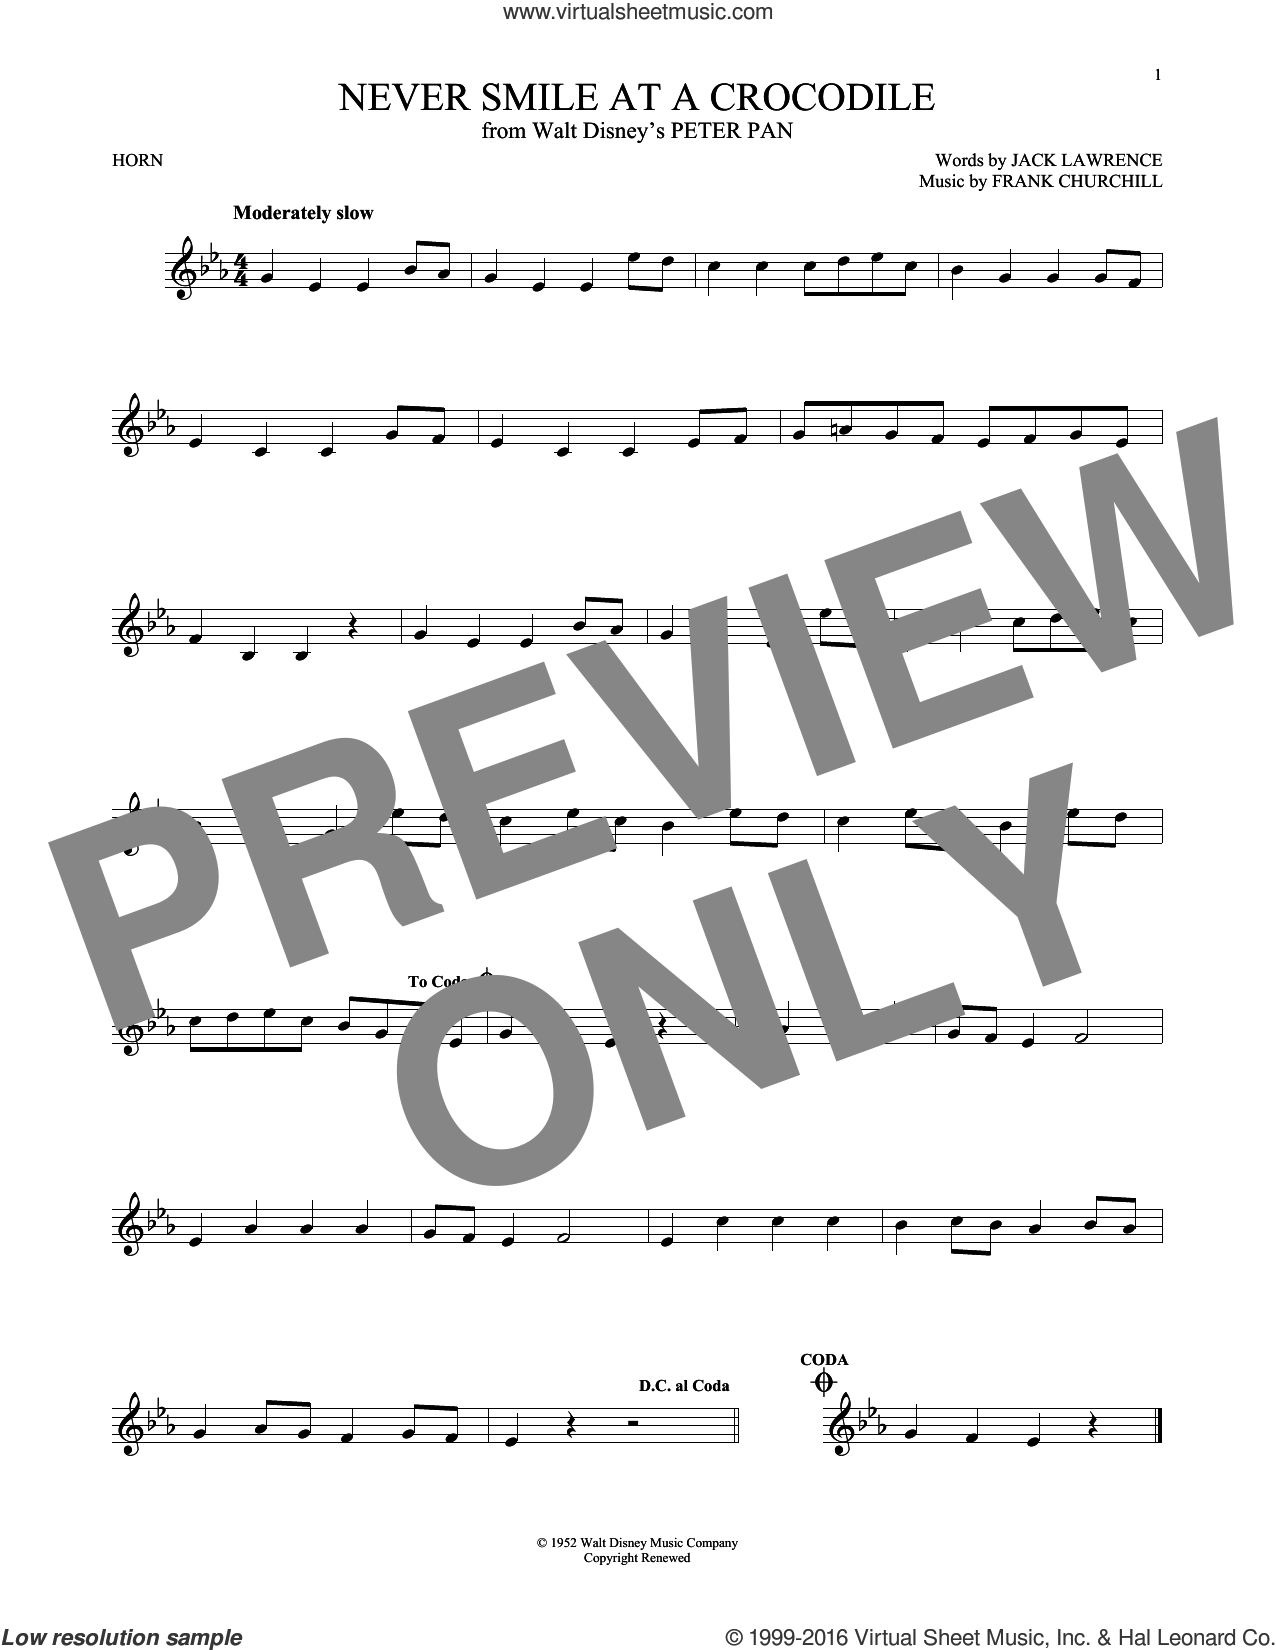 Never Smile At A Crocodile sheet music for horn solo by Jack Lawrence and Frank Churchill, intermediate skill level